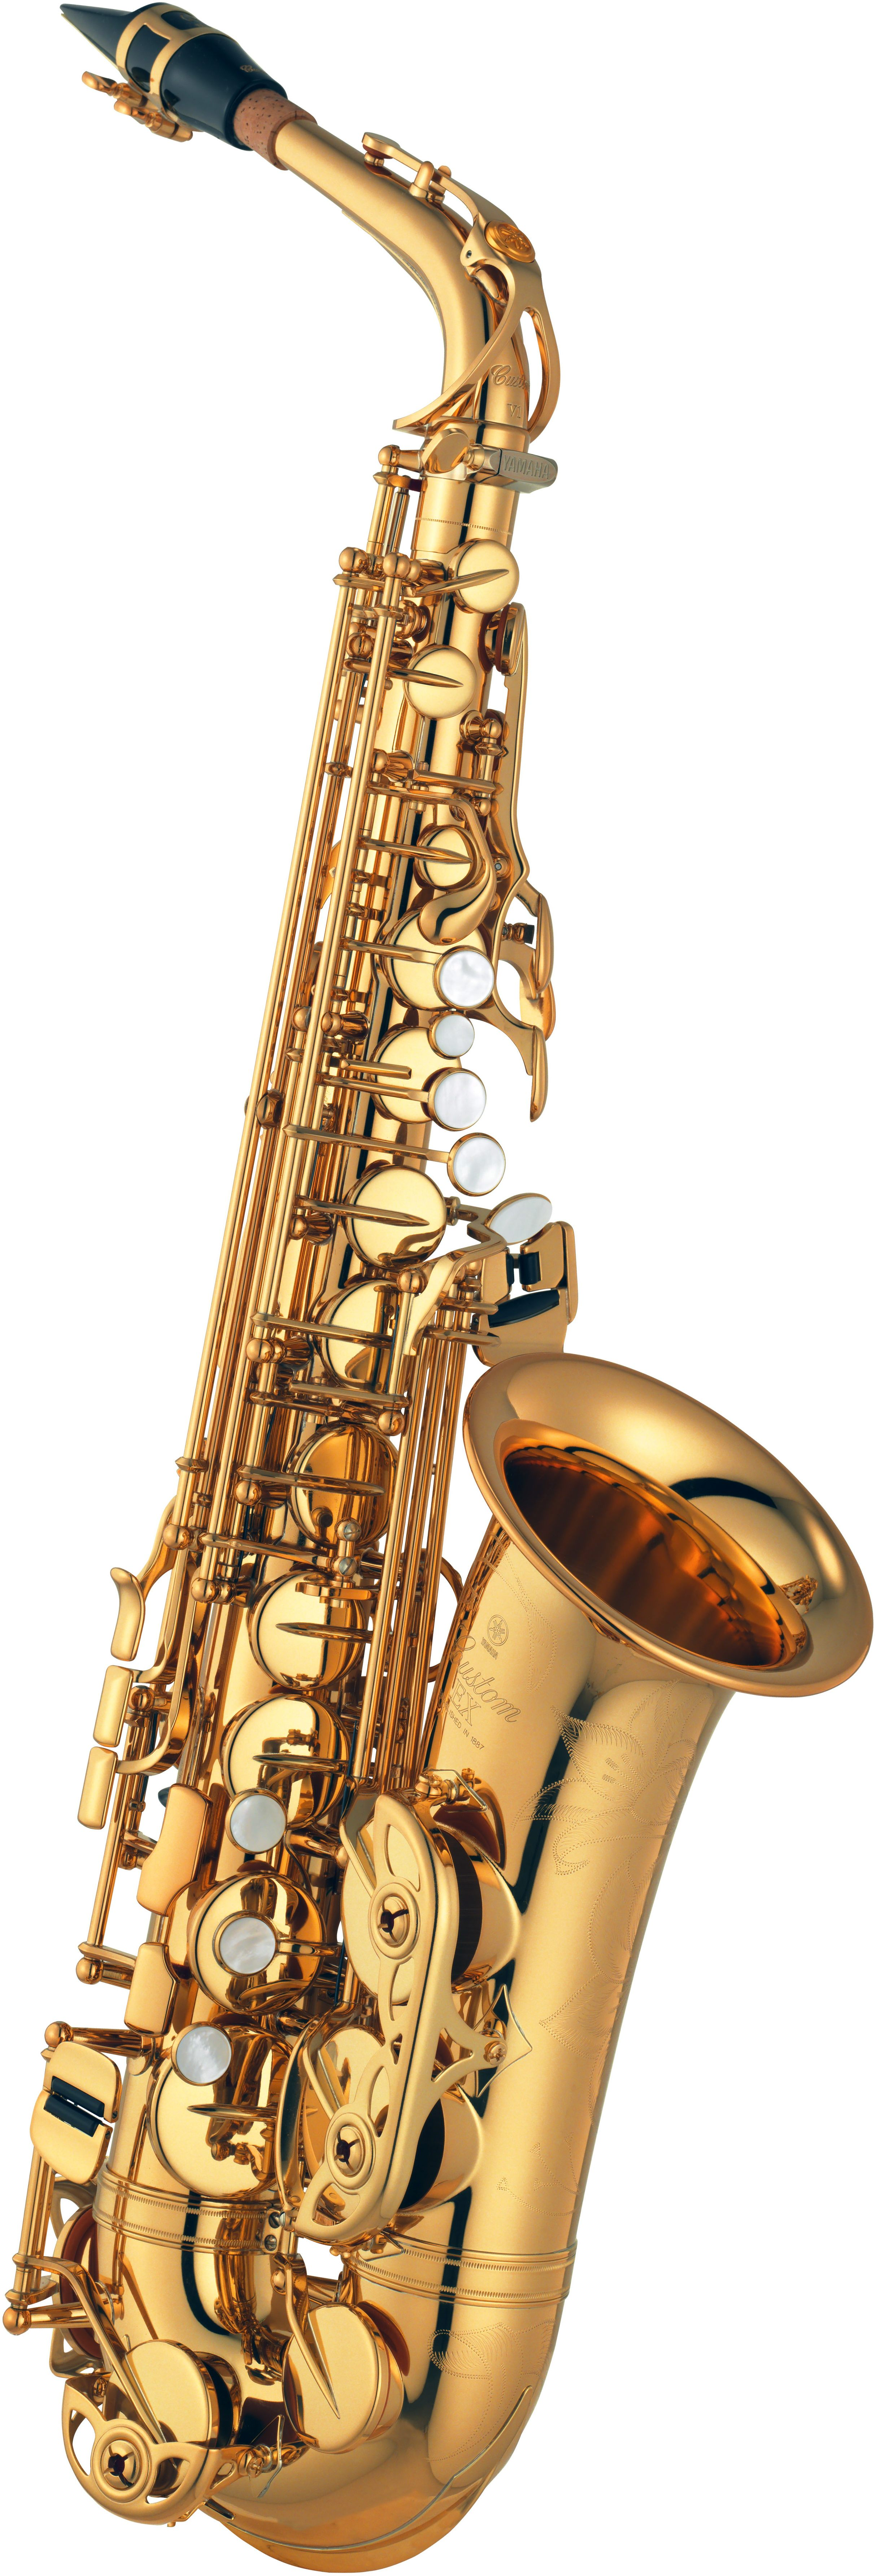 Yas 875ex overview saxophones brass woodwinds for Yamaha yas 875